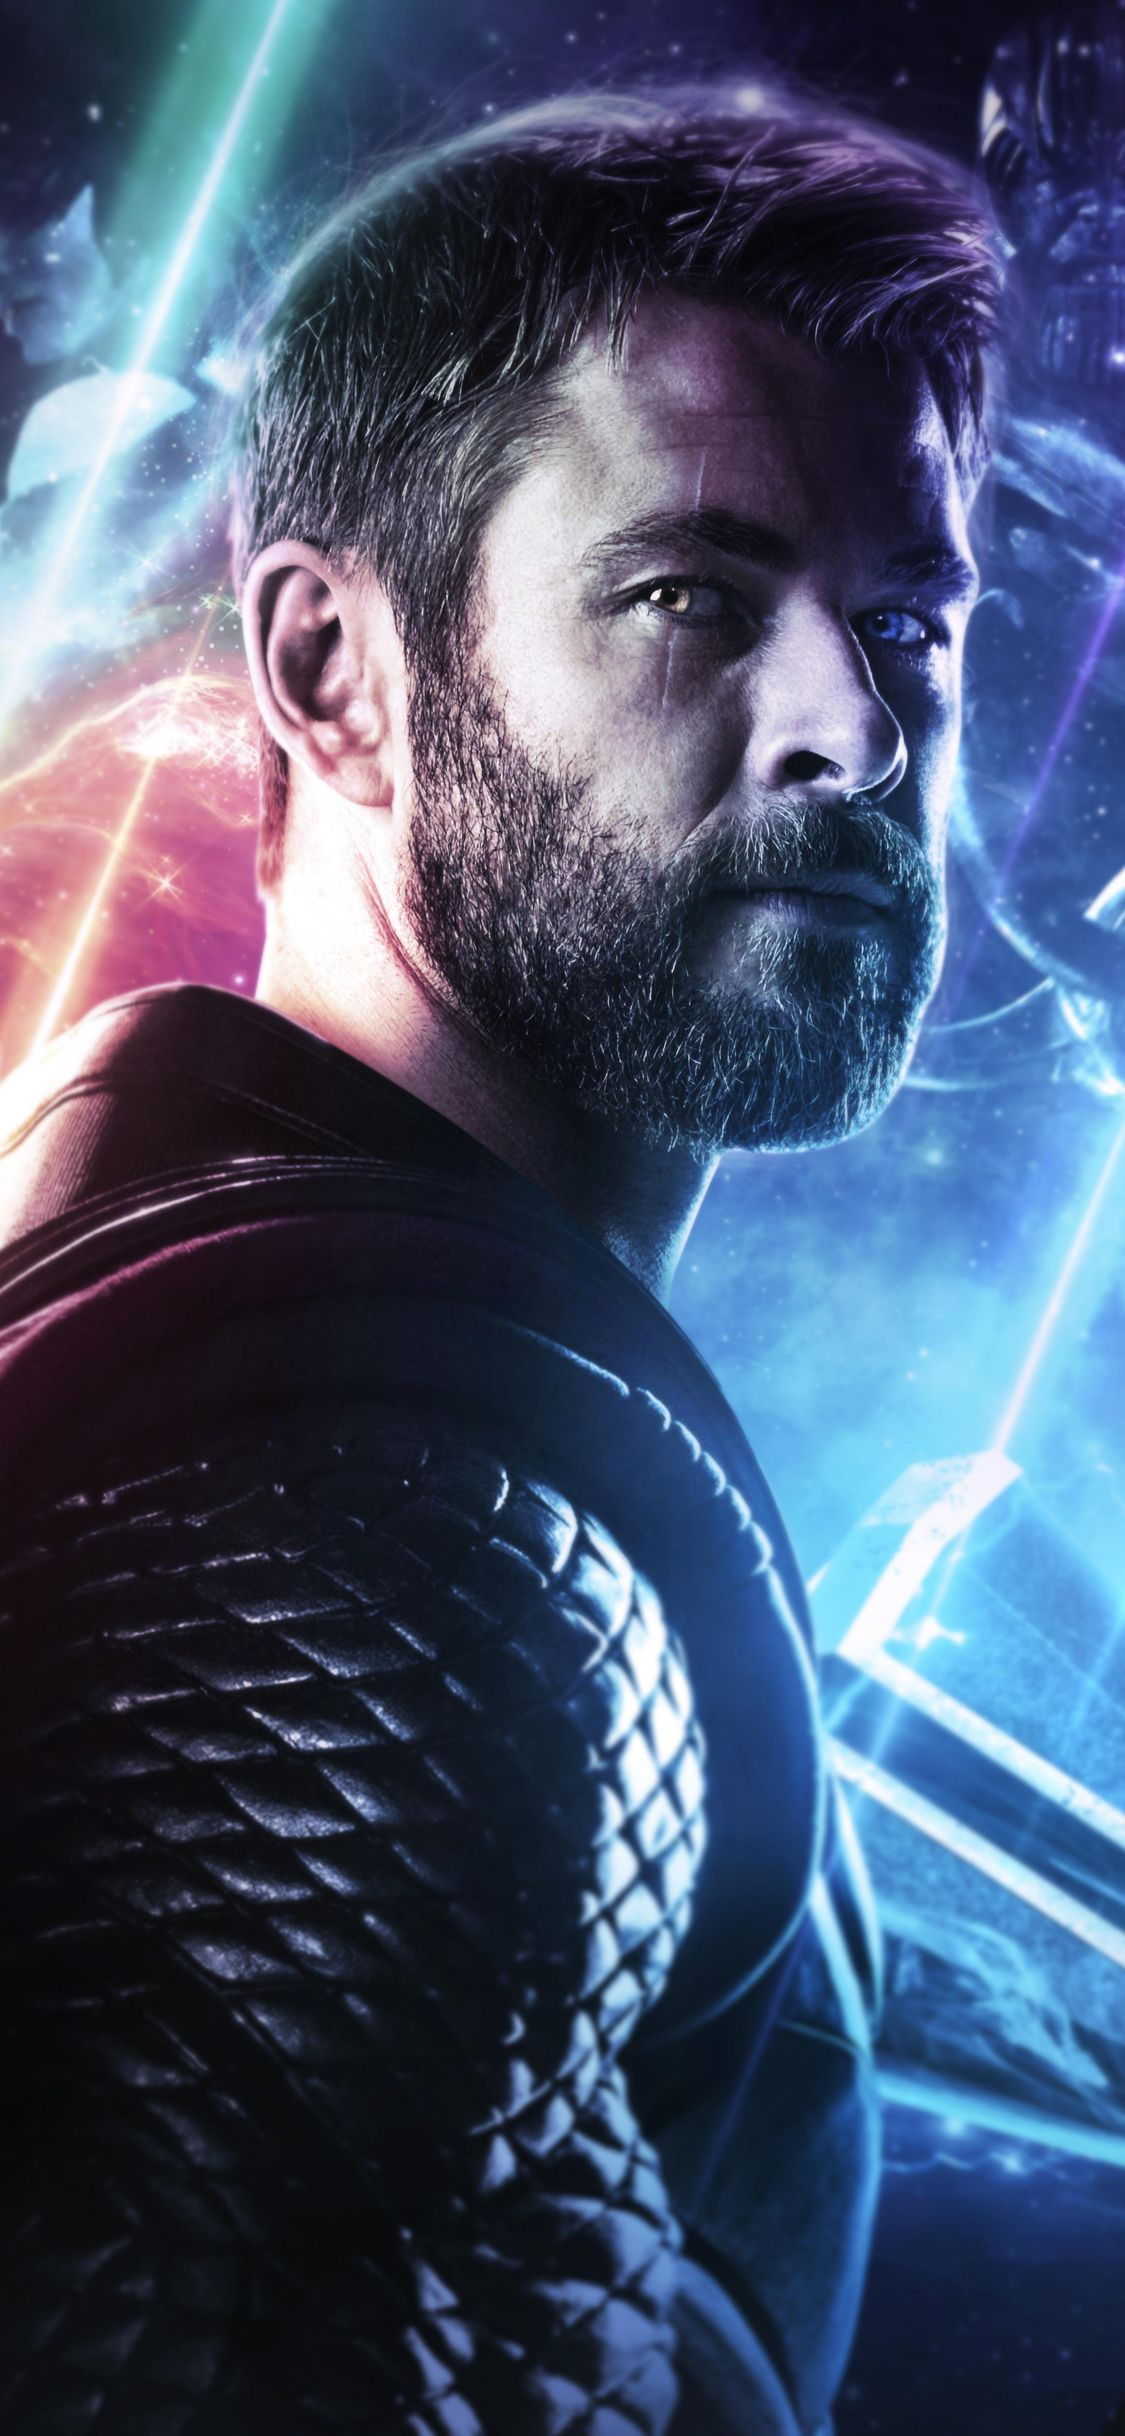 1125x2436 Thor Avengers Endgame 4k New Iphone XS,Iphone 10